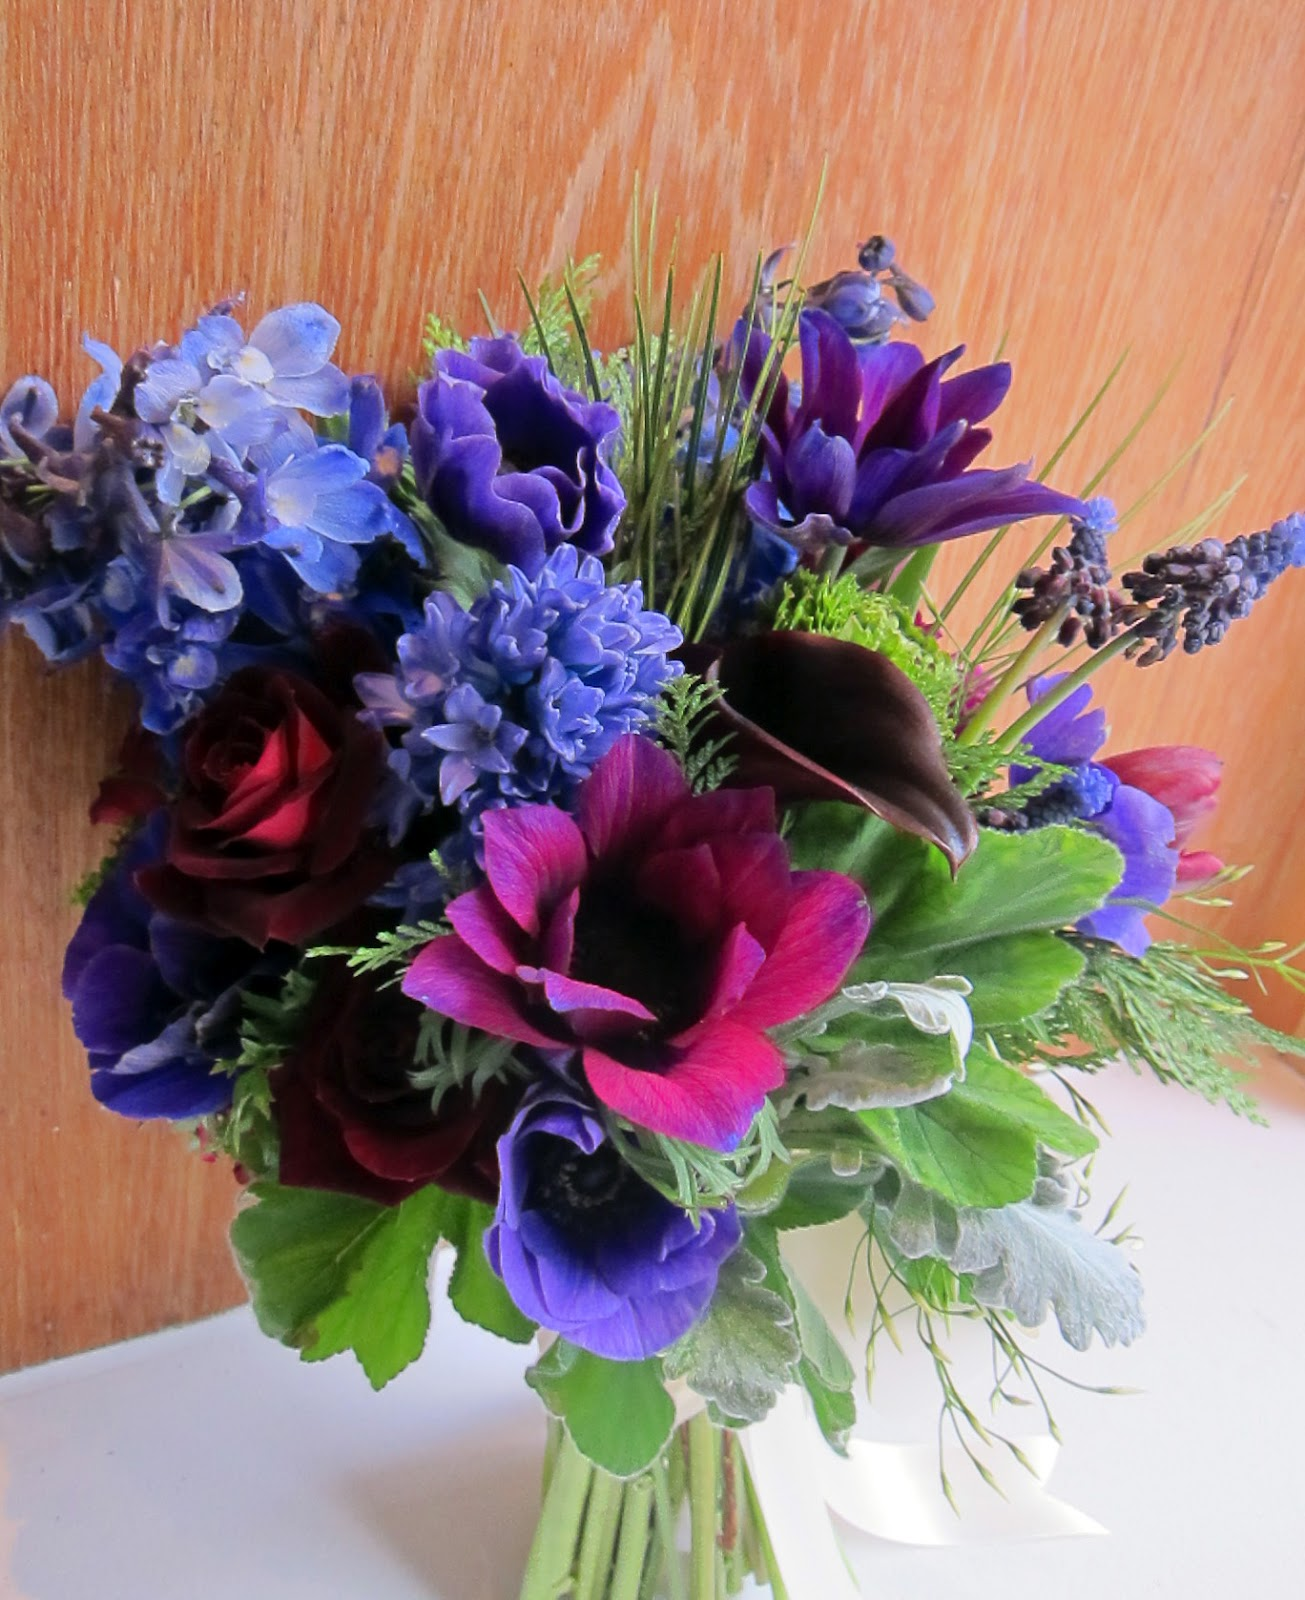 Jewel Tone Wedding Flowers: Little Pheasant: February 2012